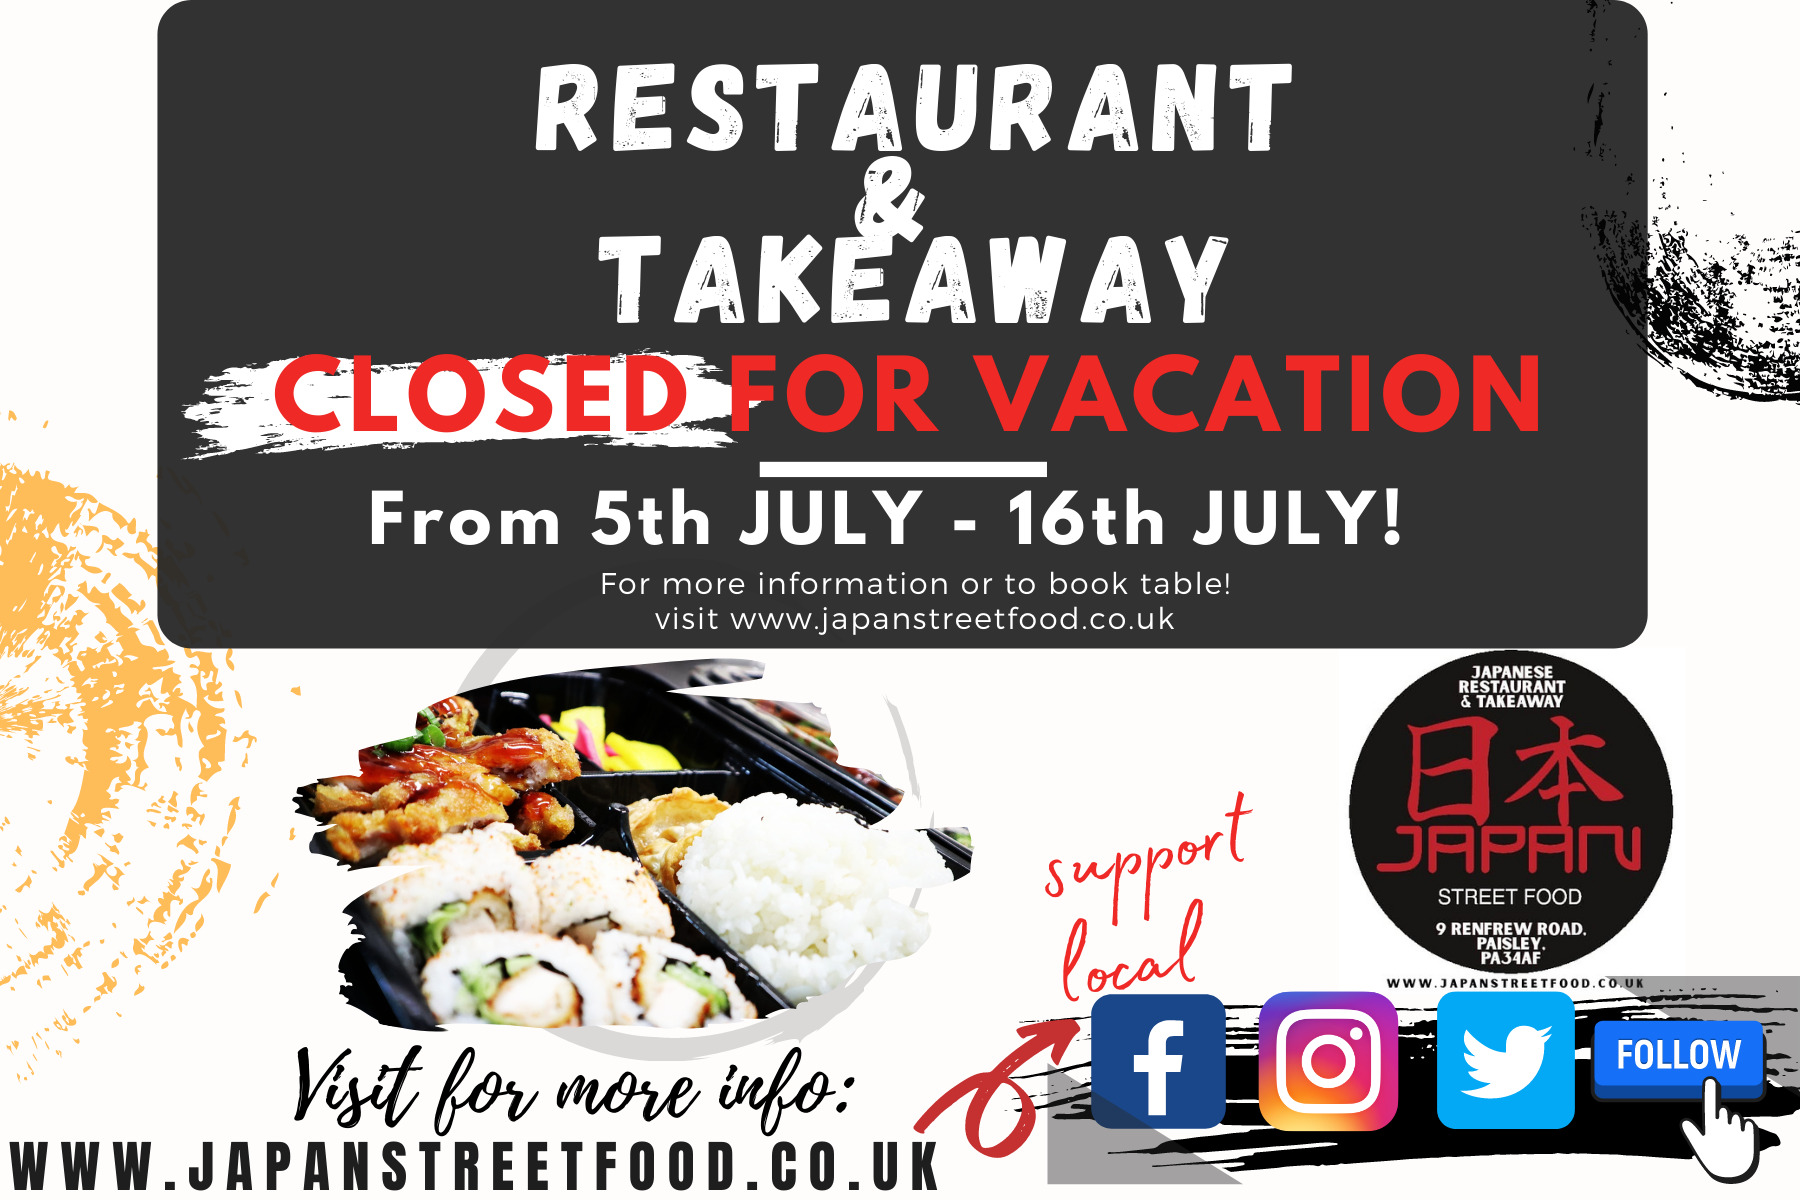 restaurant closed for vacation Japan Street Food Paisley